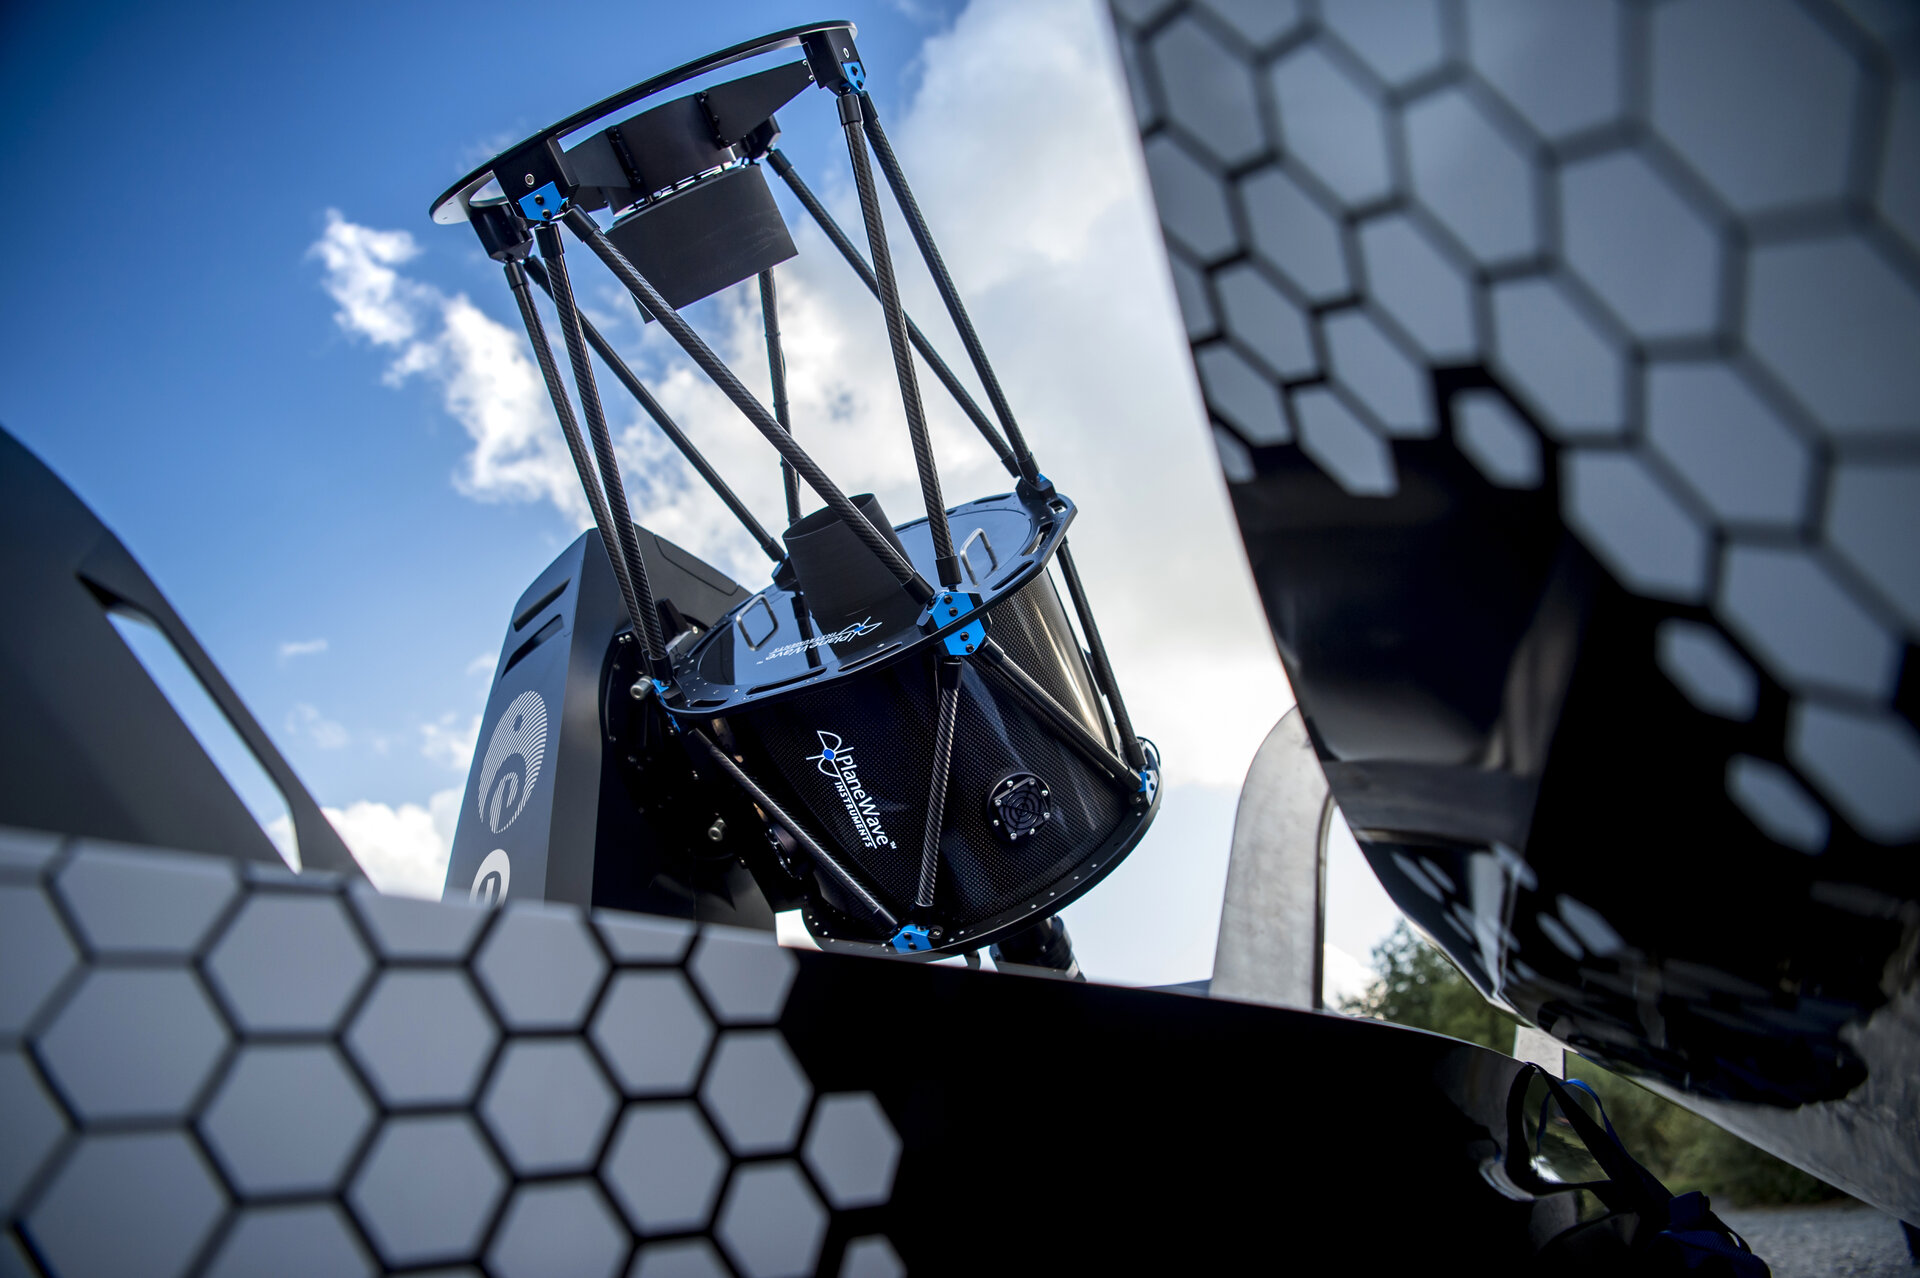 PlaneWave telescope, transported by Nissan's Navara 'Dark Sky' concept vehicle